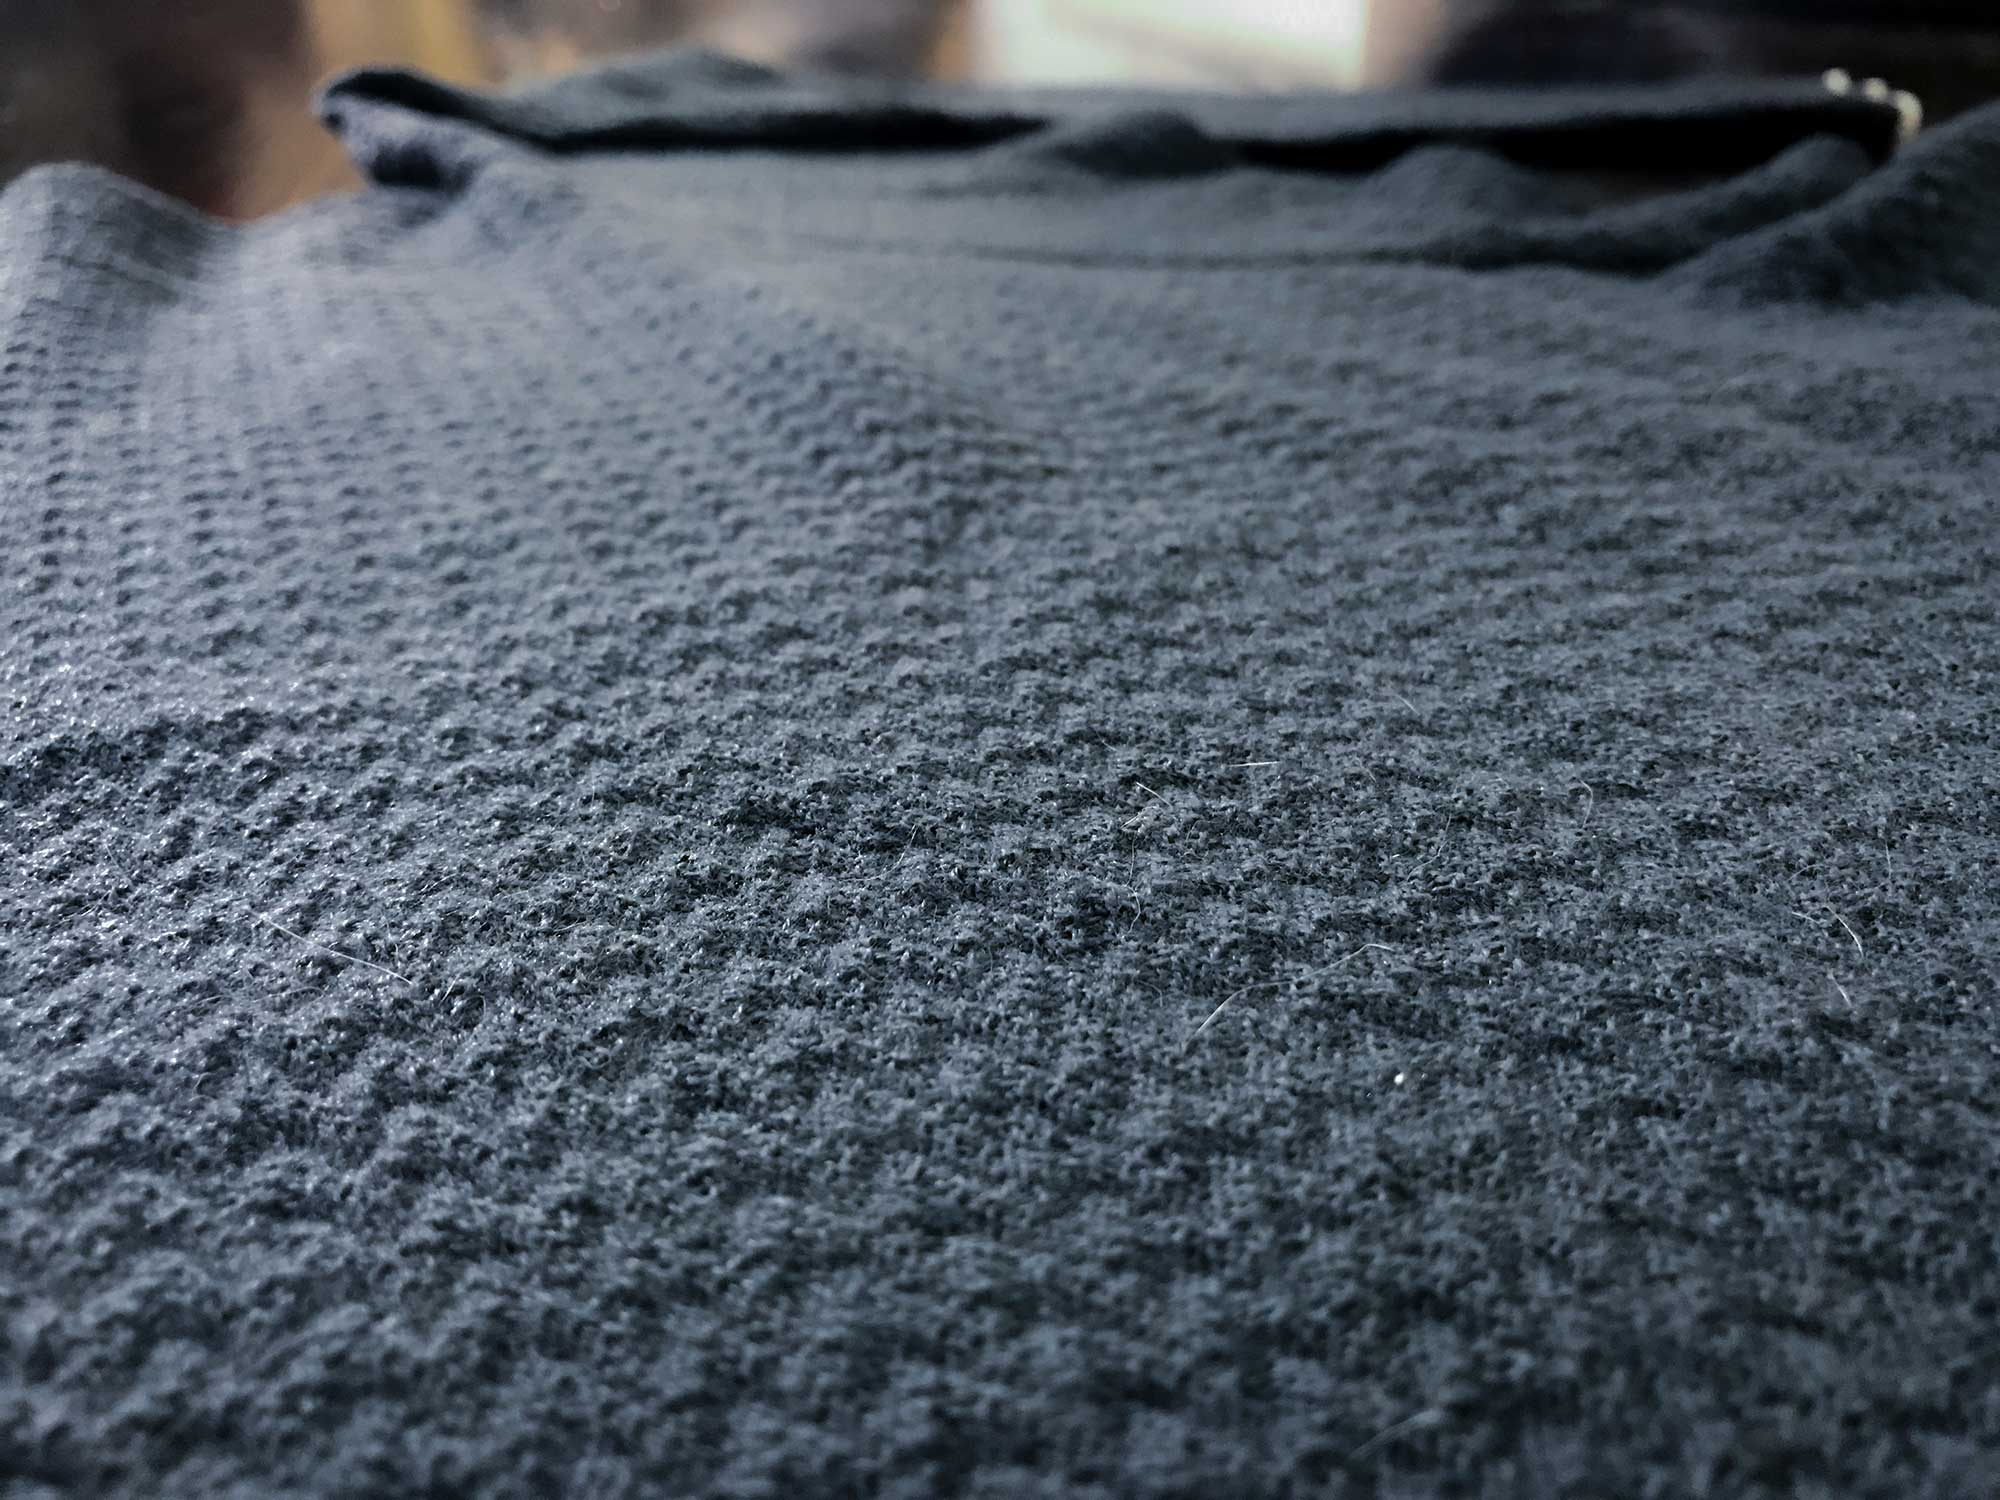 Patagonia's Merino Air weaves merino wool—that has been blasted with compressed air to fray it—around a synthetic thread to add strength.The high-loft of this garment makes it exceptionally warm, yet it breathes well and dries quickly.